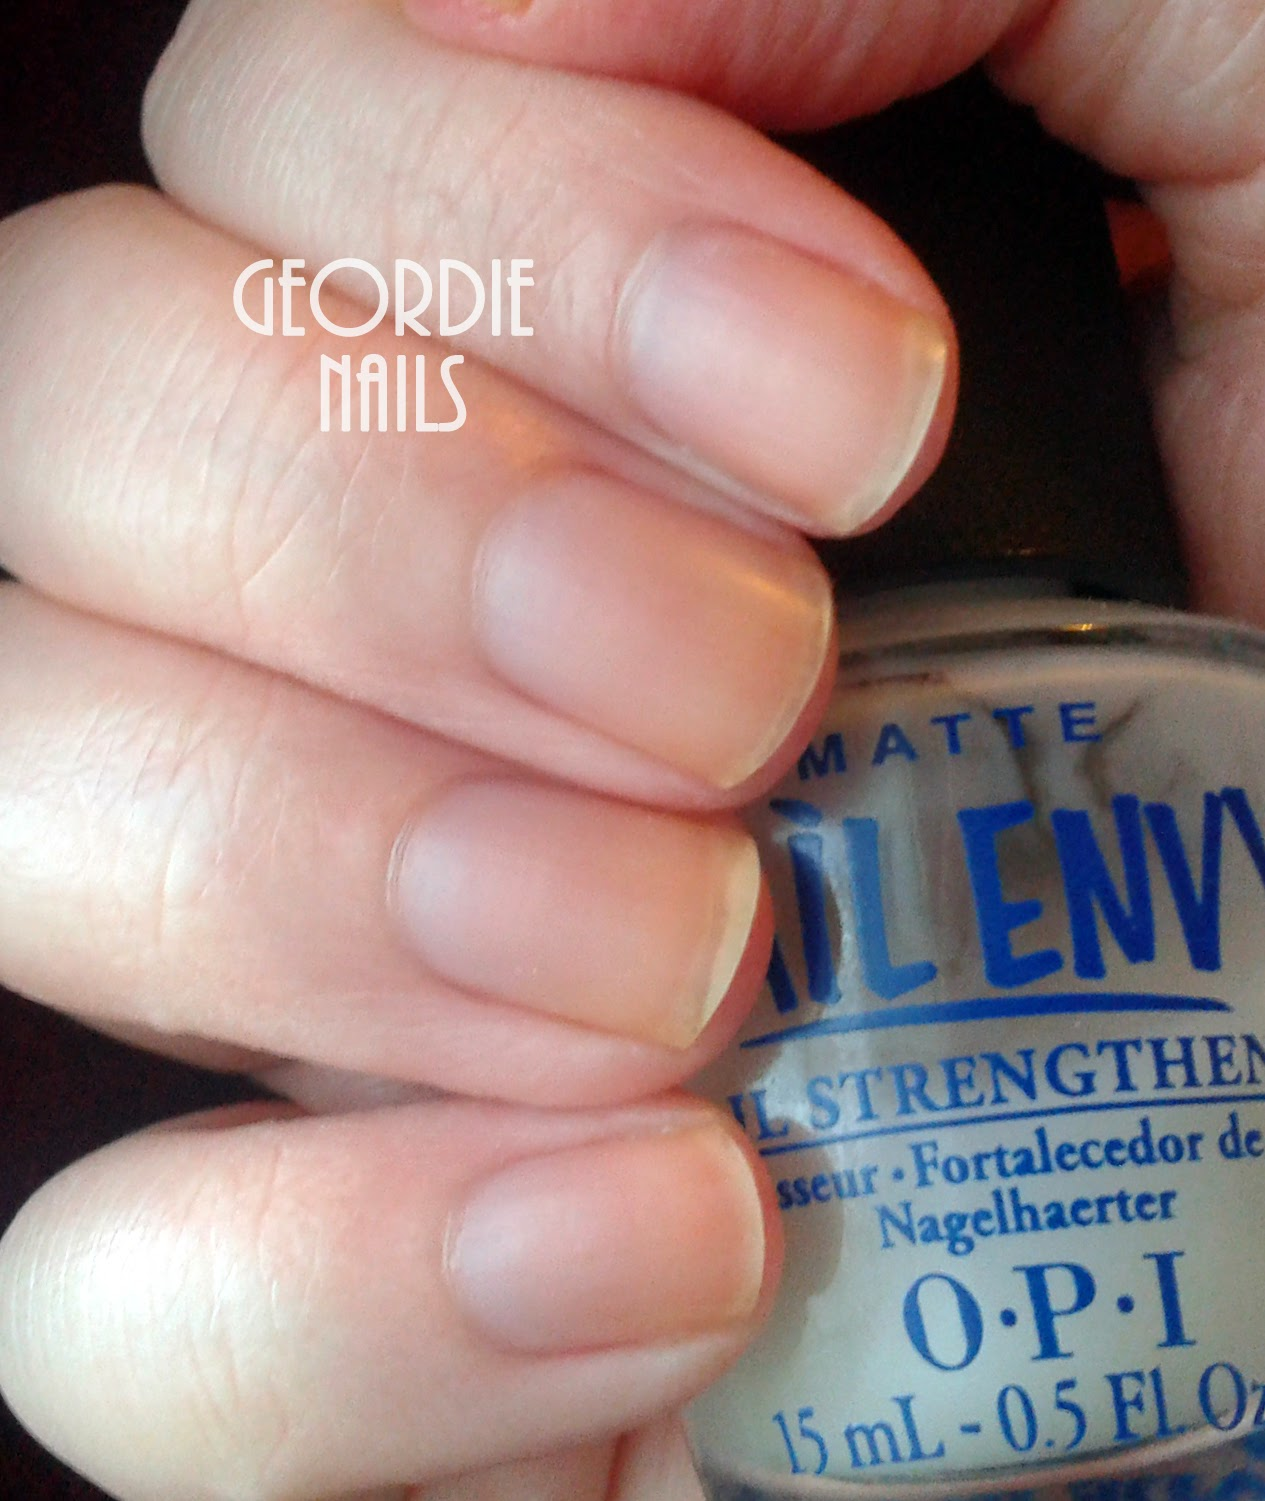 Geordie Nails: These Are My Nails